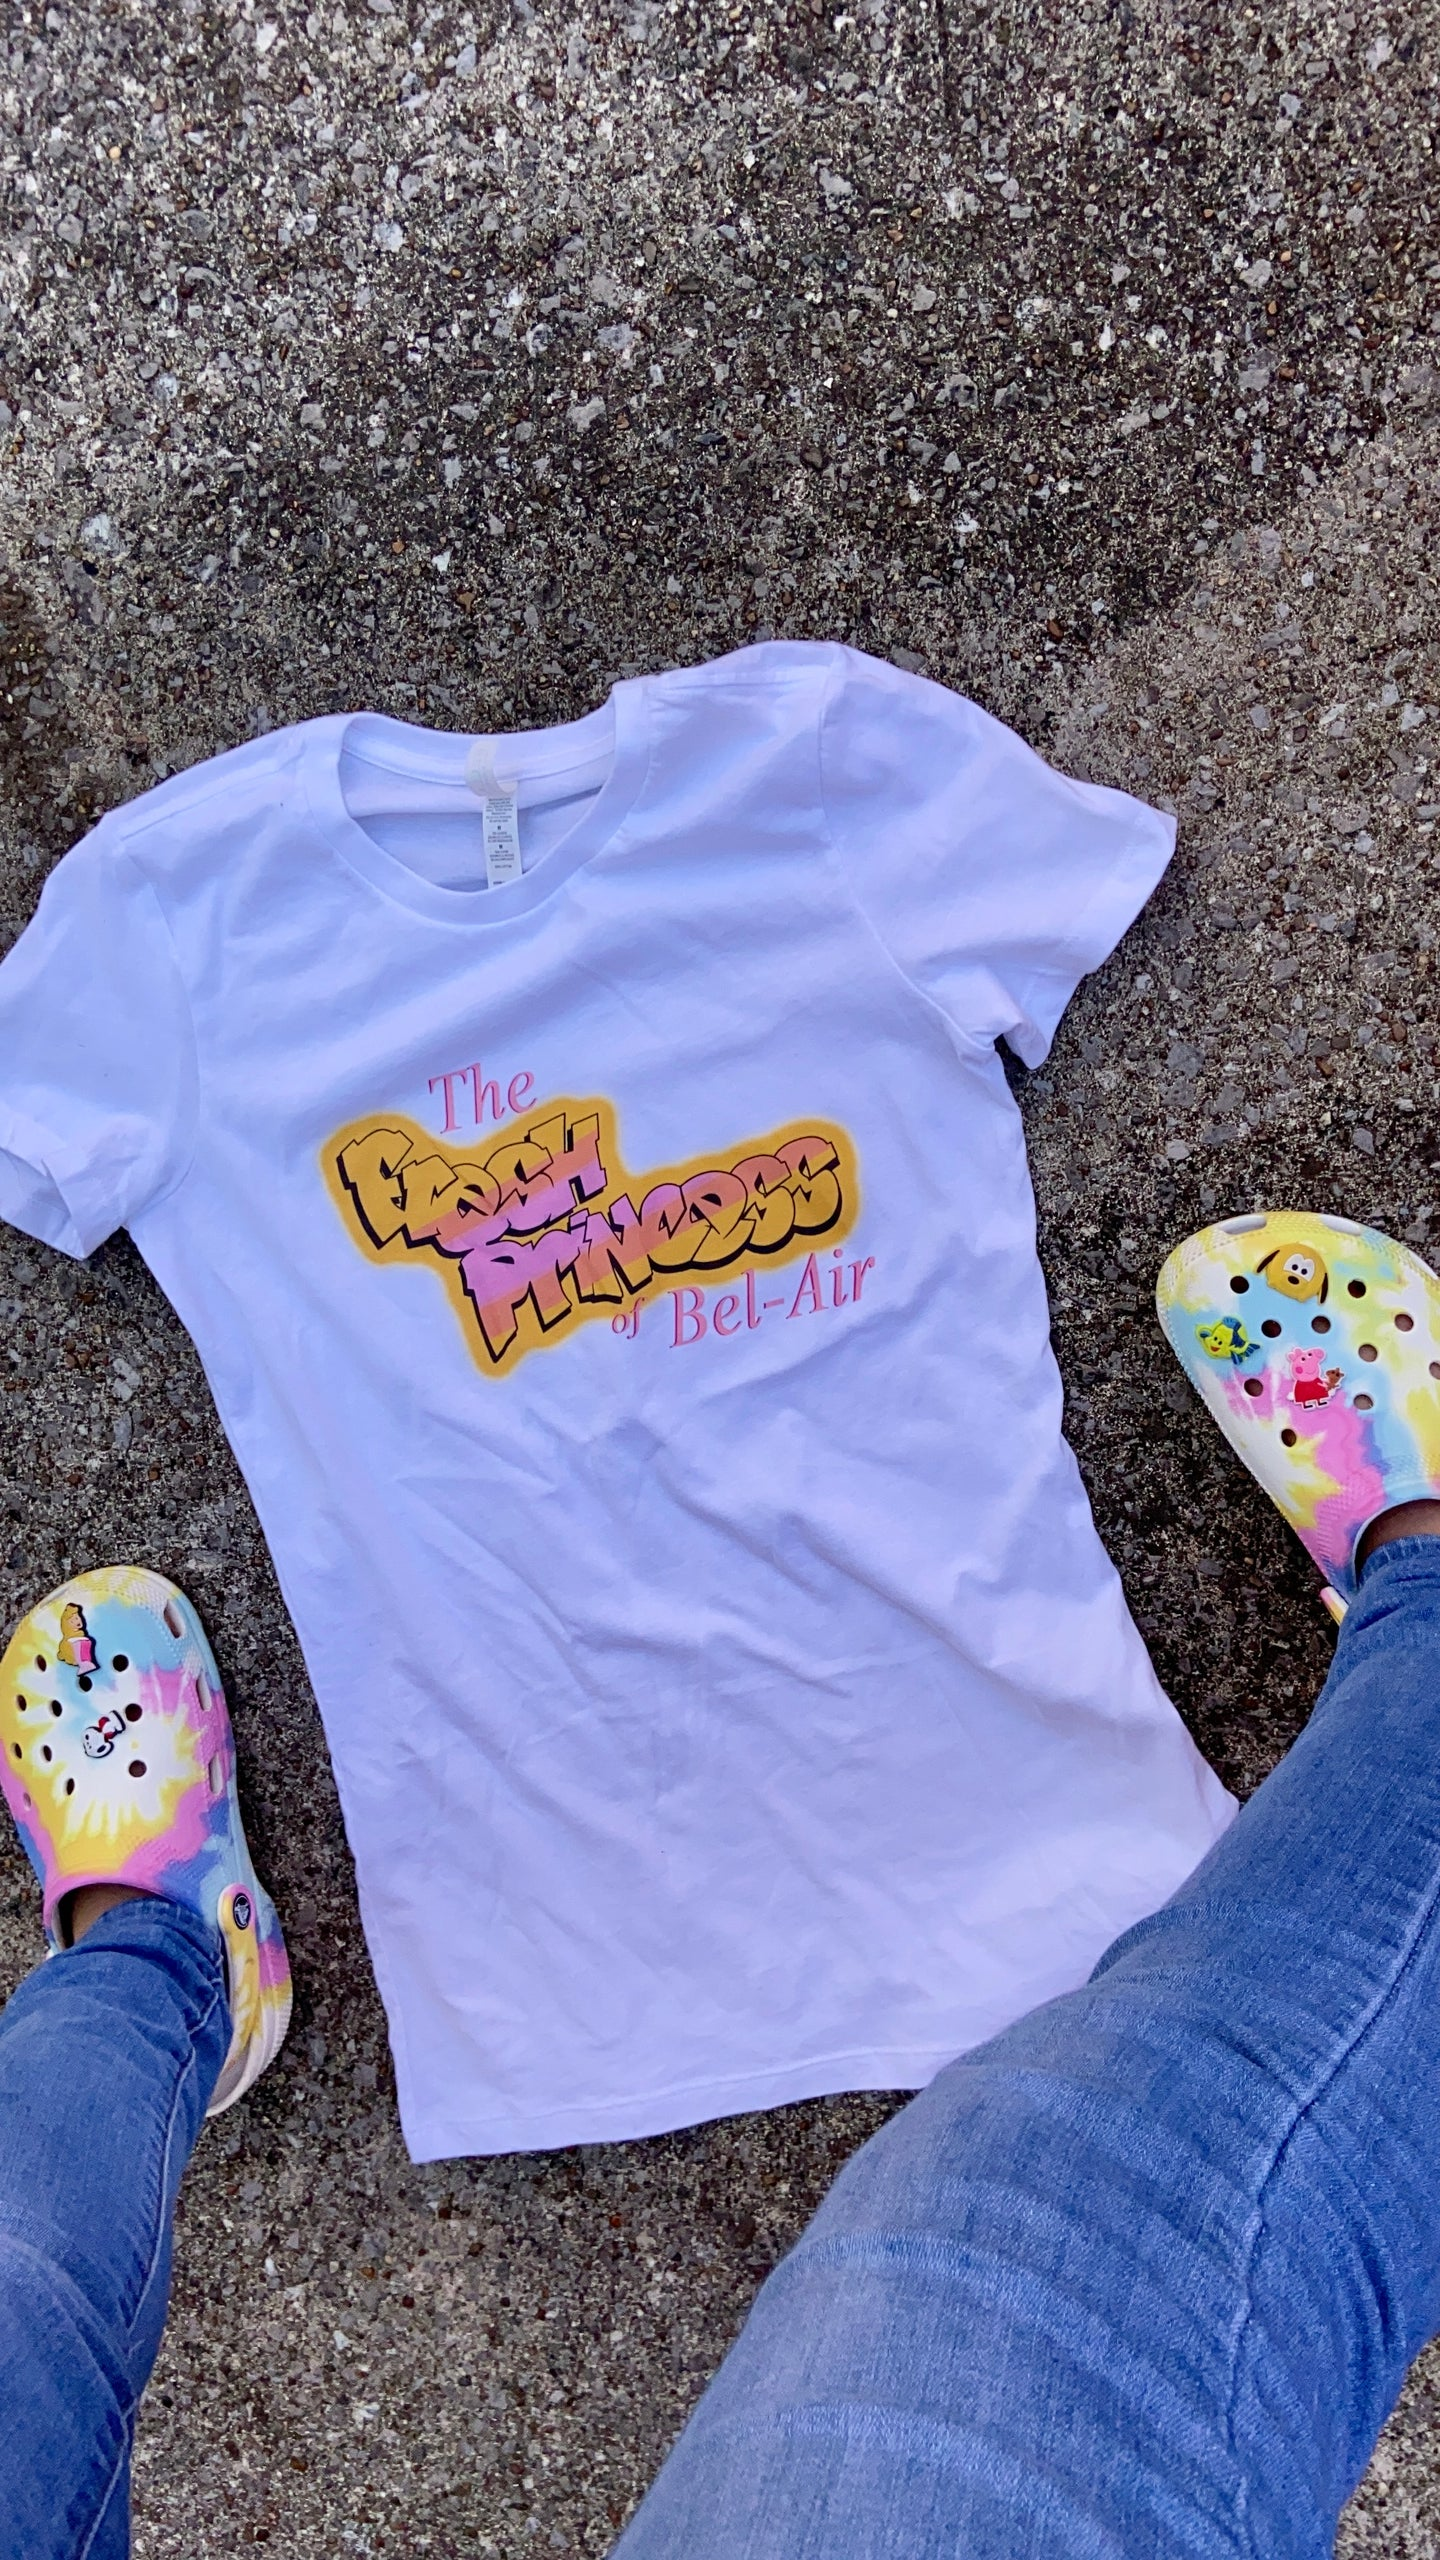 Fresh Princess of Bel-Air Tee